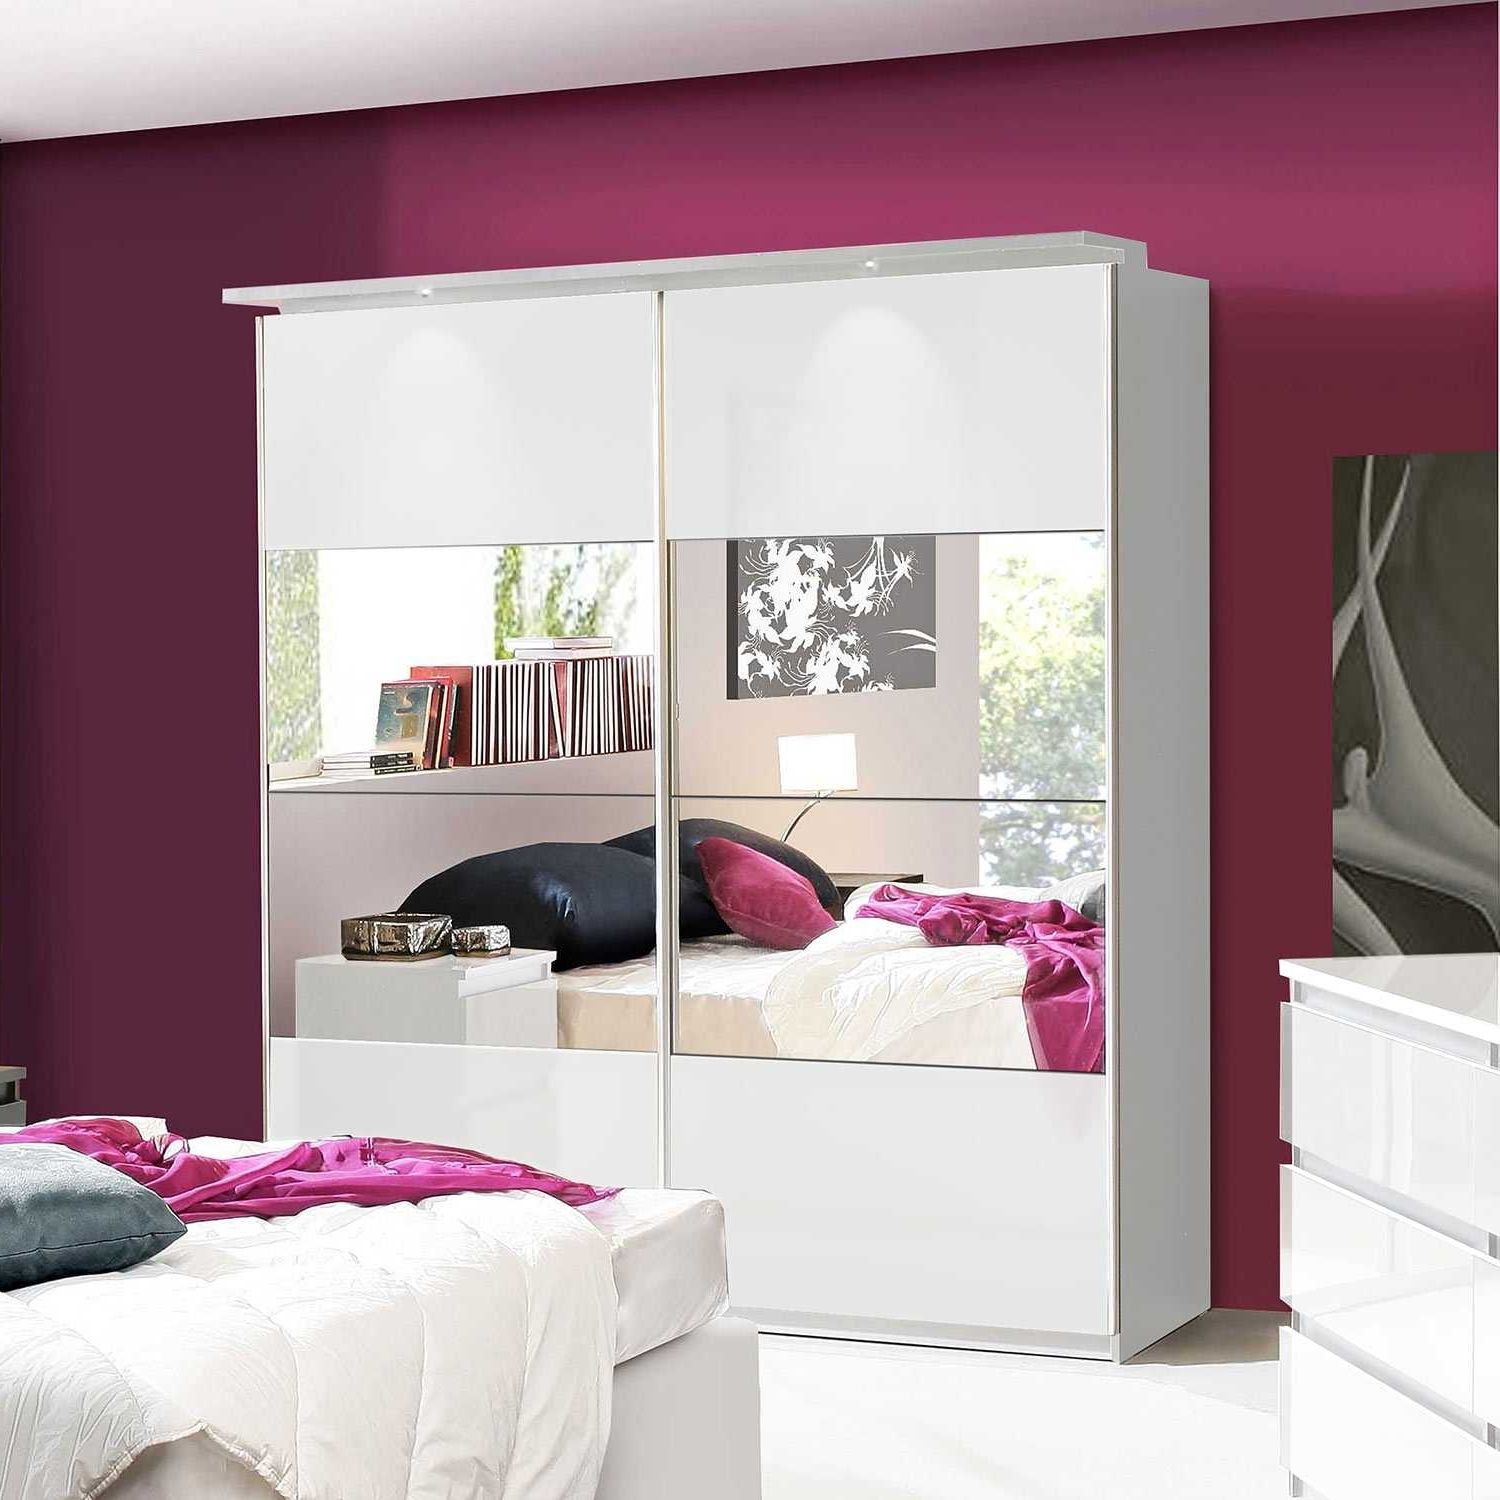 Lucia White Gloss Sliding Door Wardrobe Chls824e1c87 Regarding Famous High Gloss Sliding Wardrobes (View 9 of 15)